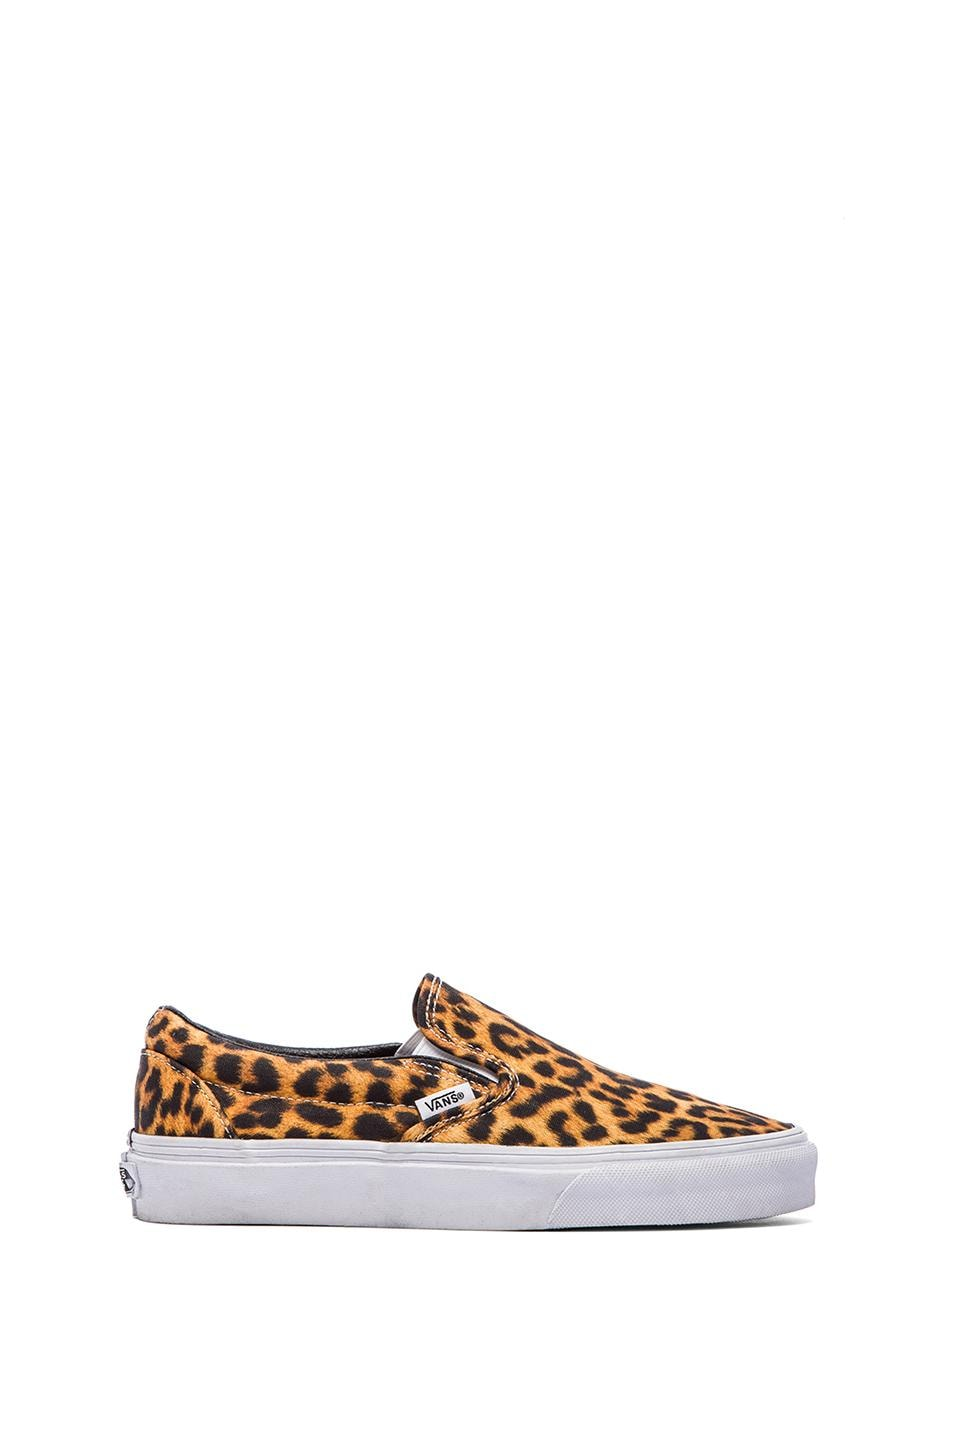 Vans SNEAKERS SLIP-ON CLASSIC